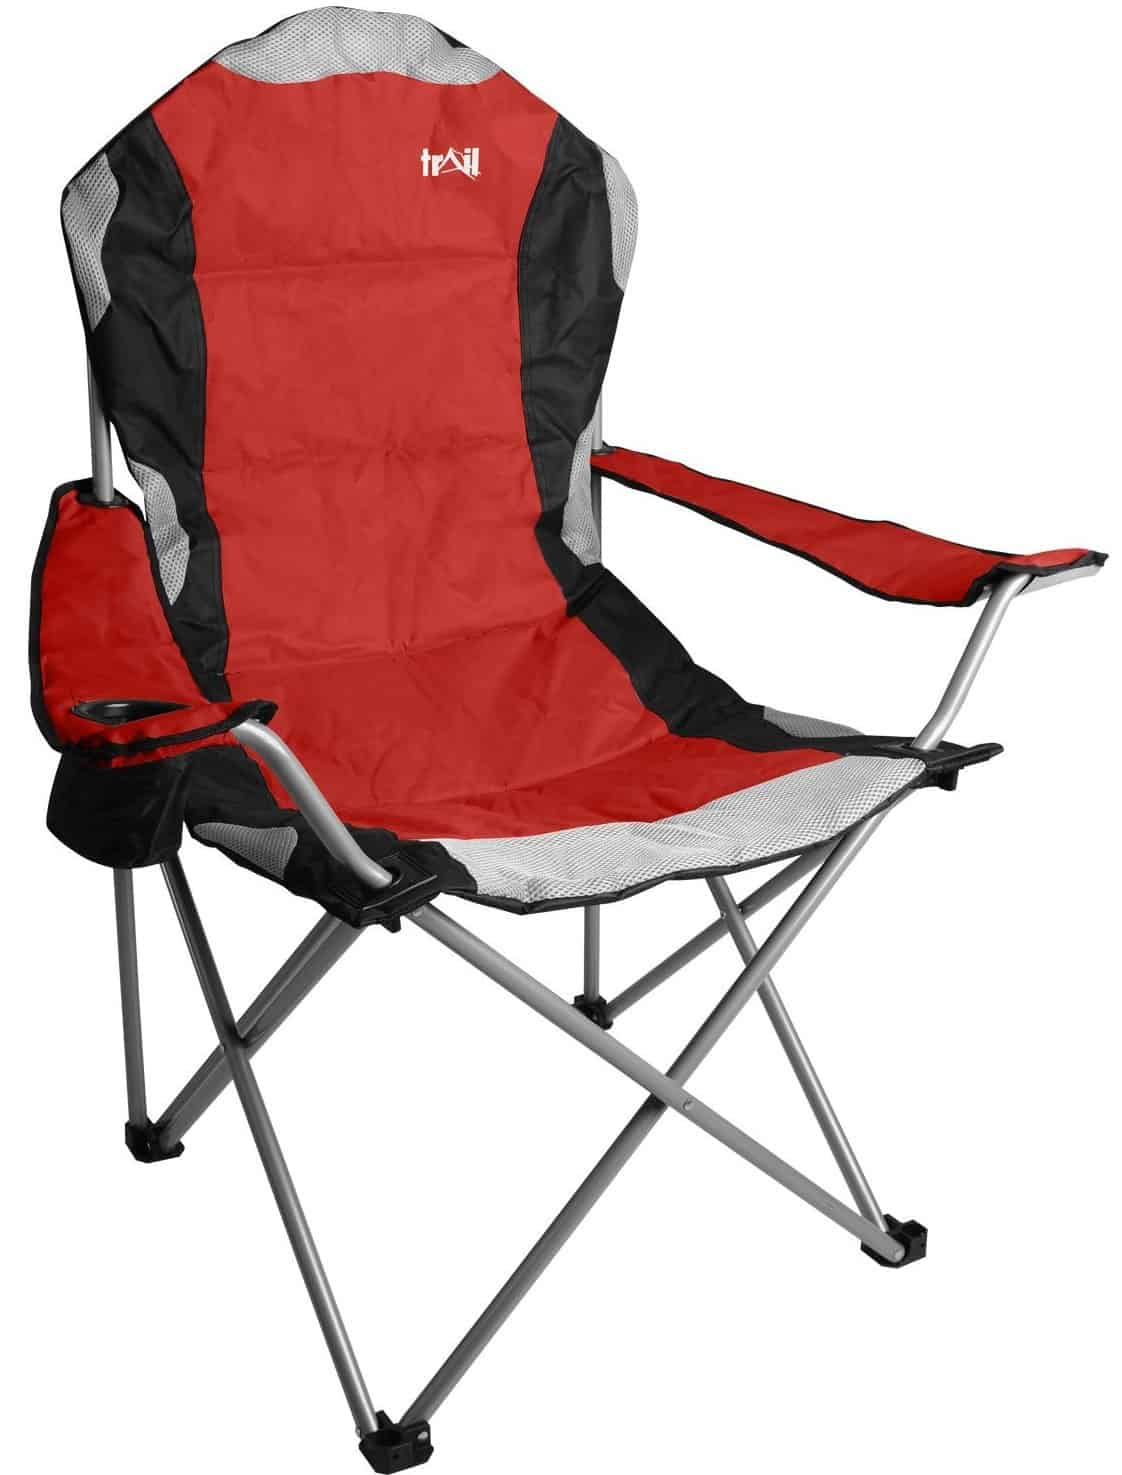 Best Luxury Camping Chair – Trail